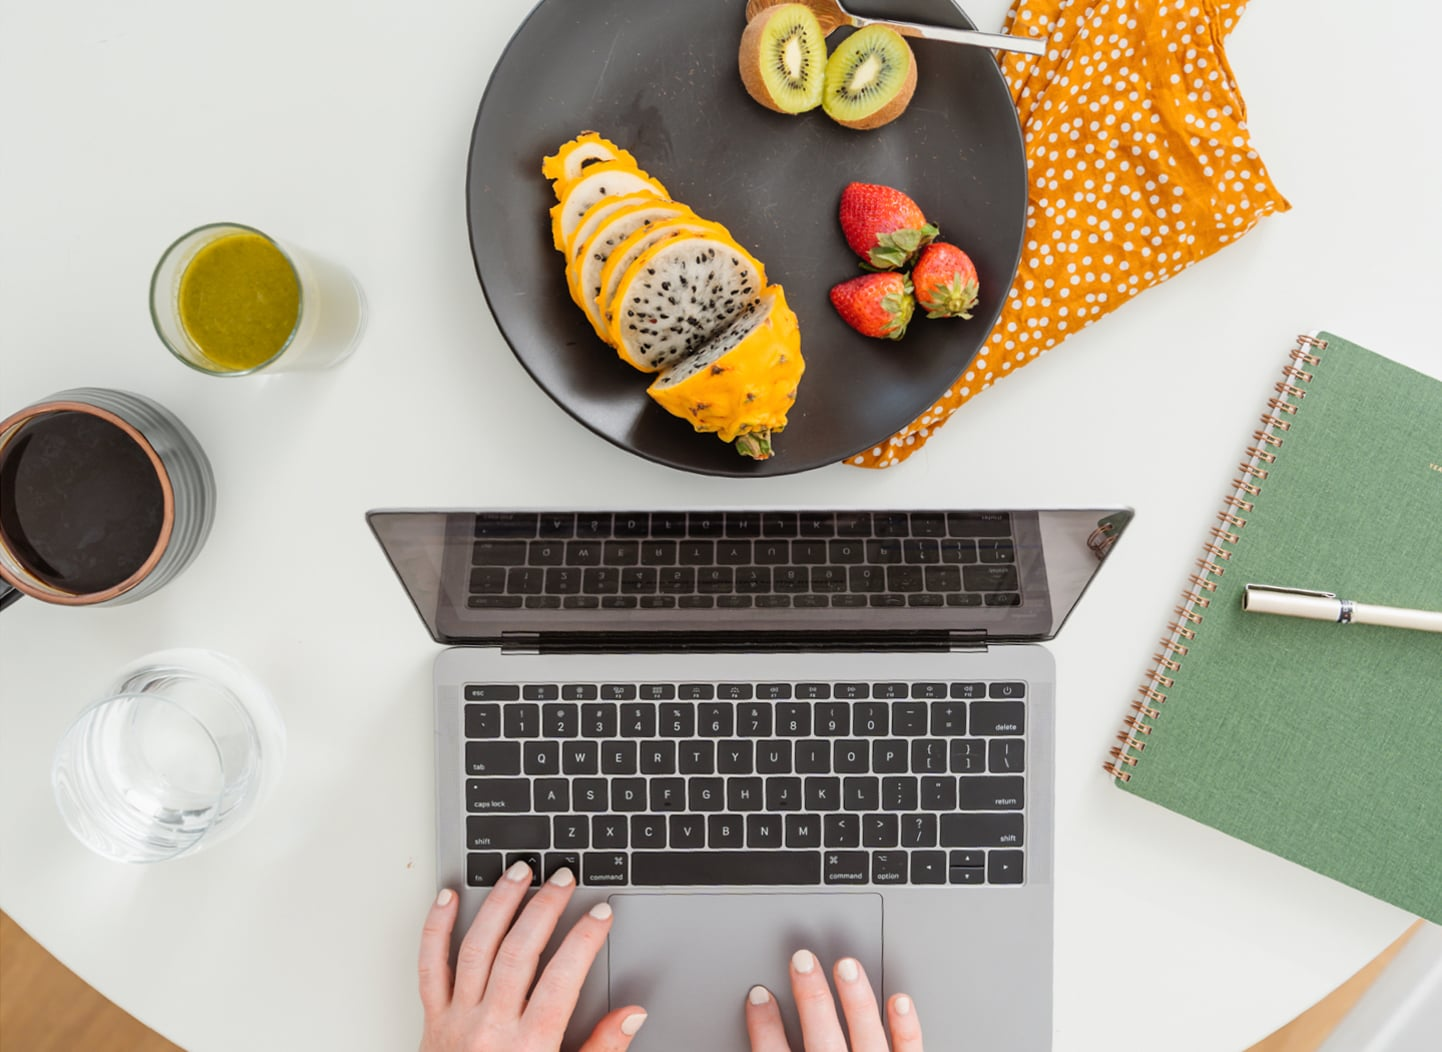 Hands on a laptop keyboard with a plate of fruit beside